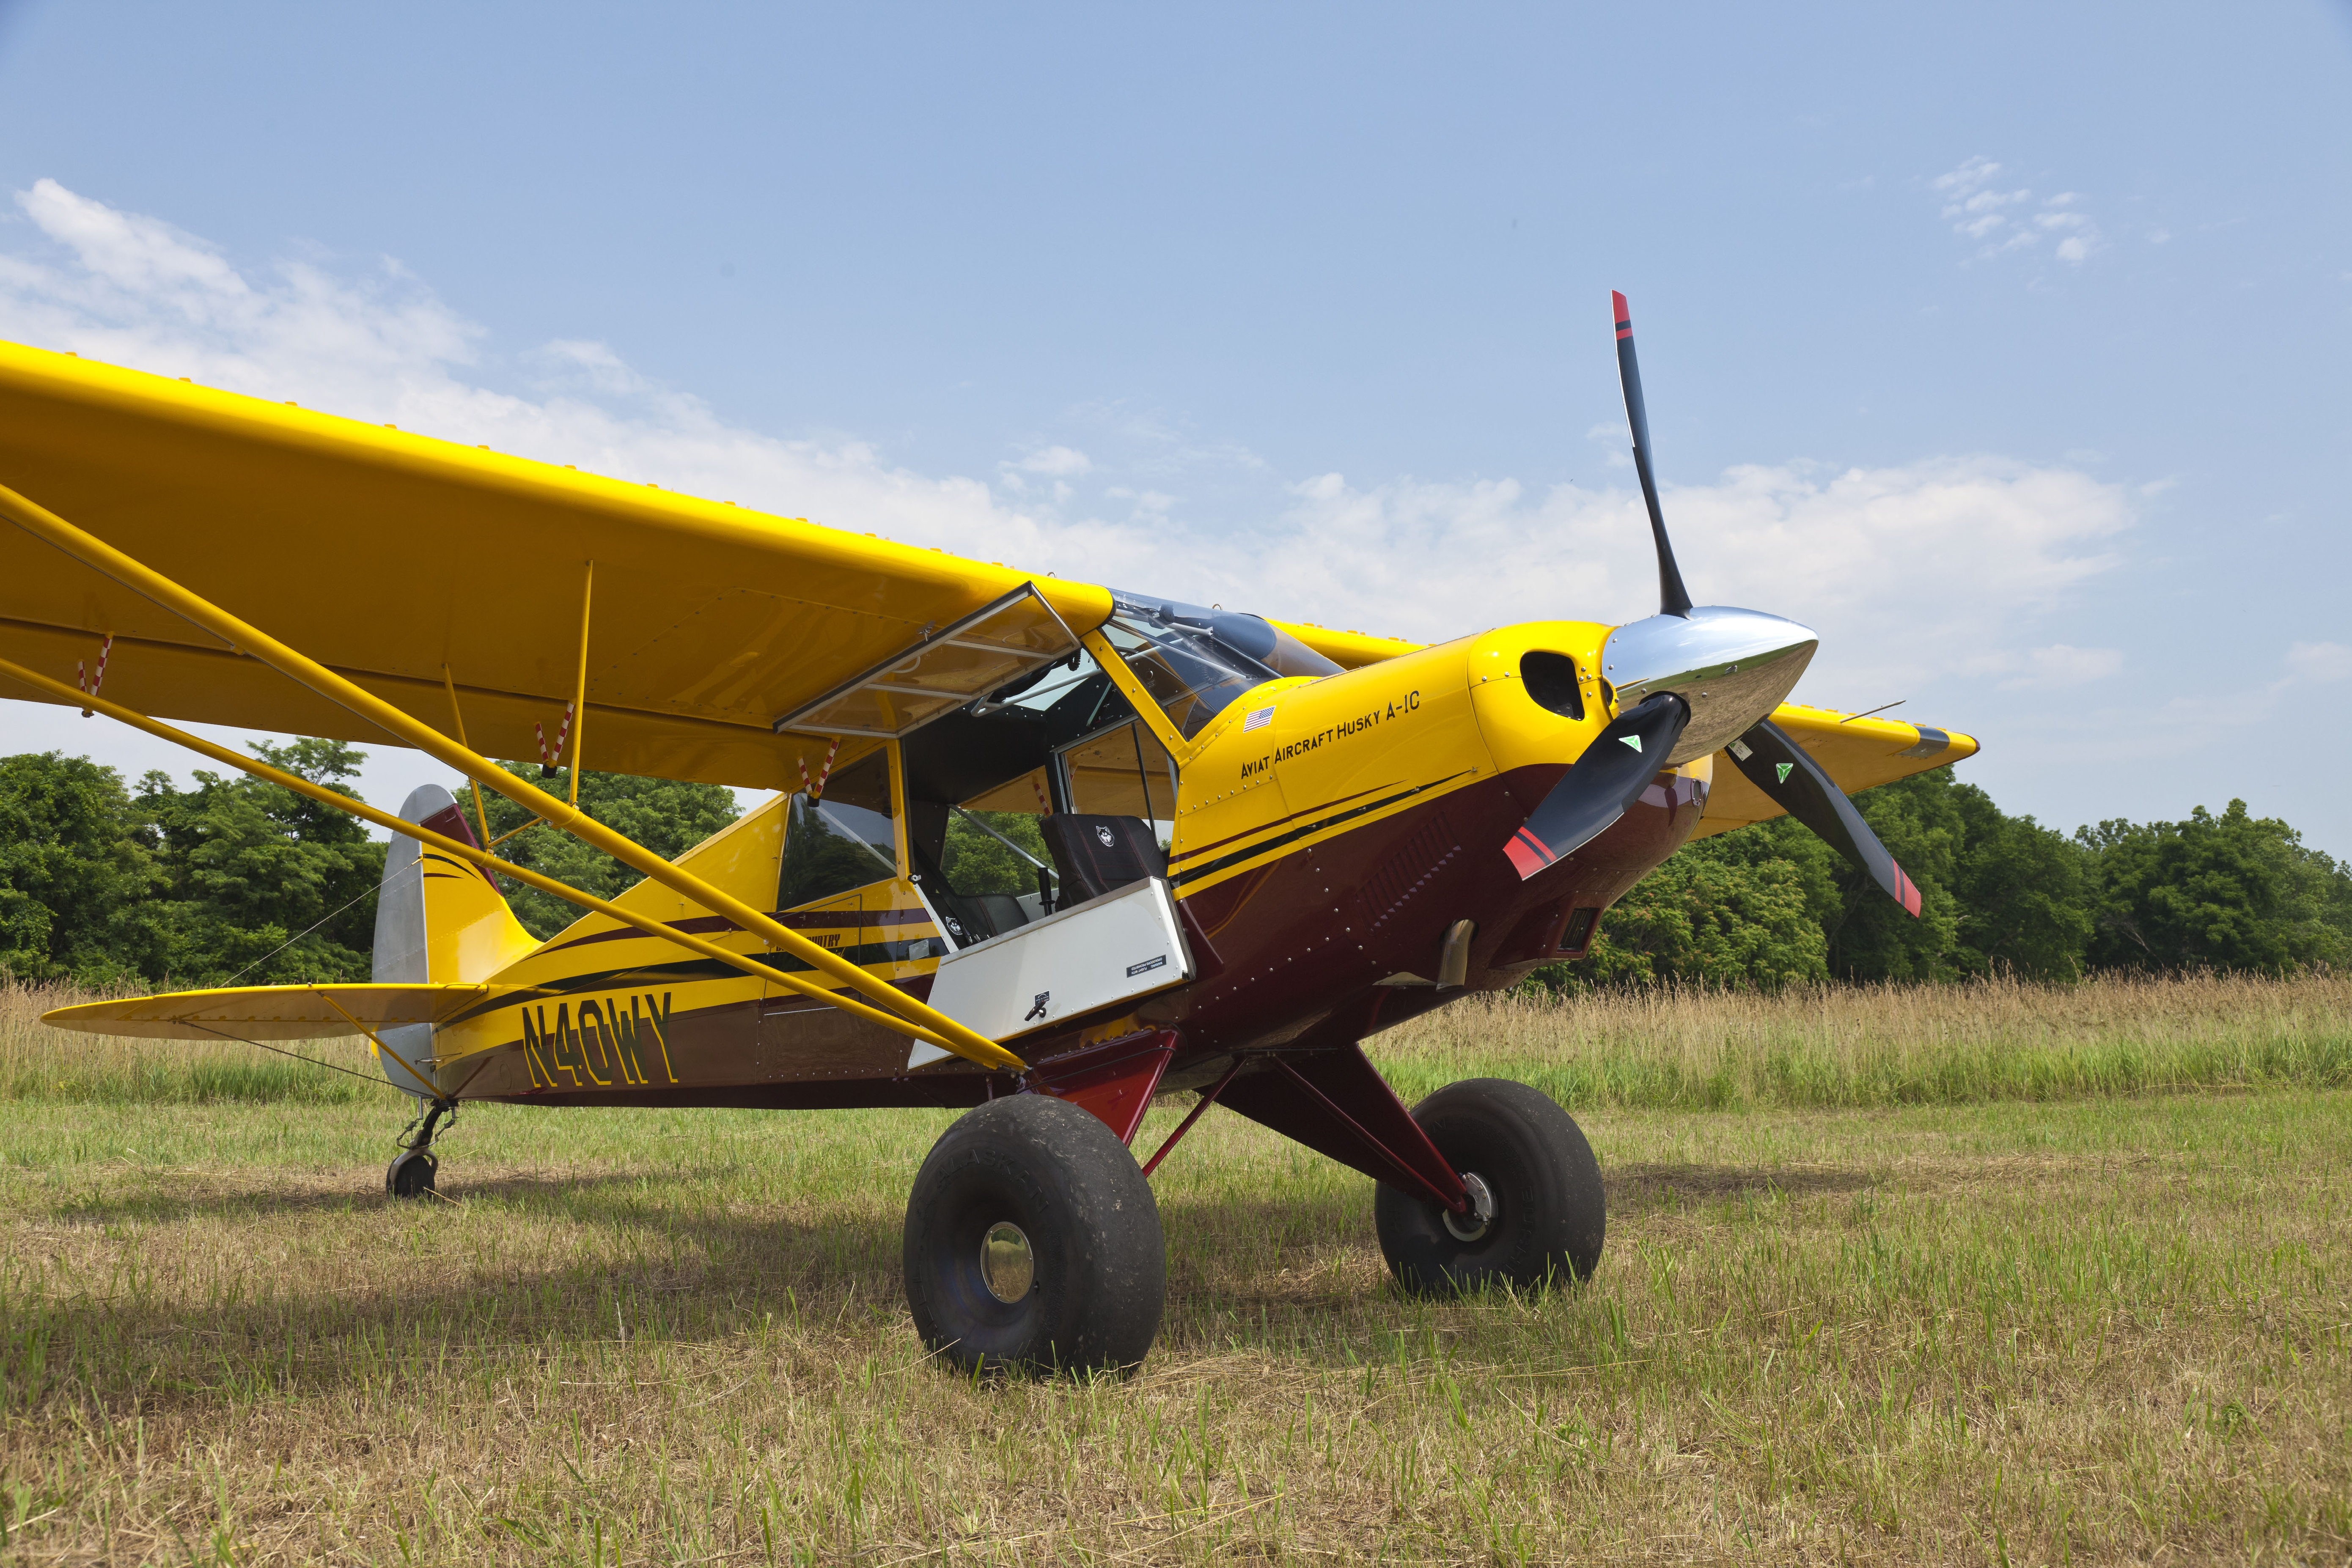 Aircraft Spotlight: What Makes a Good Backcountry Aircraft? - AOPA